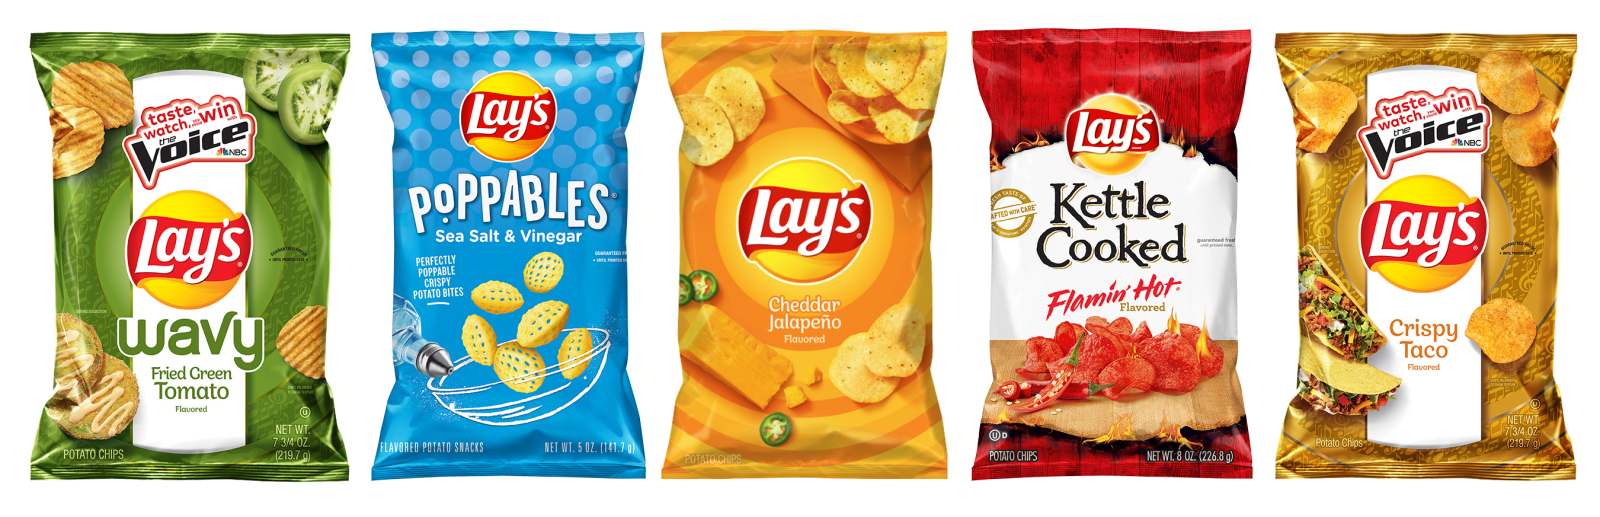 Lay's teamed up with The Voice to deliver some limited-time flavors and more